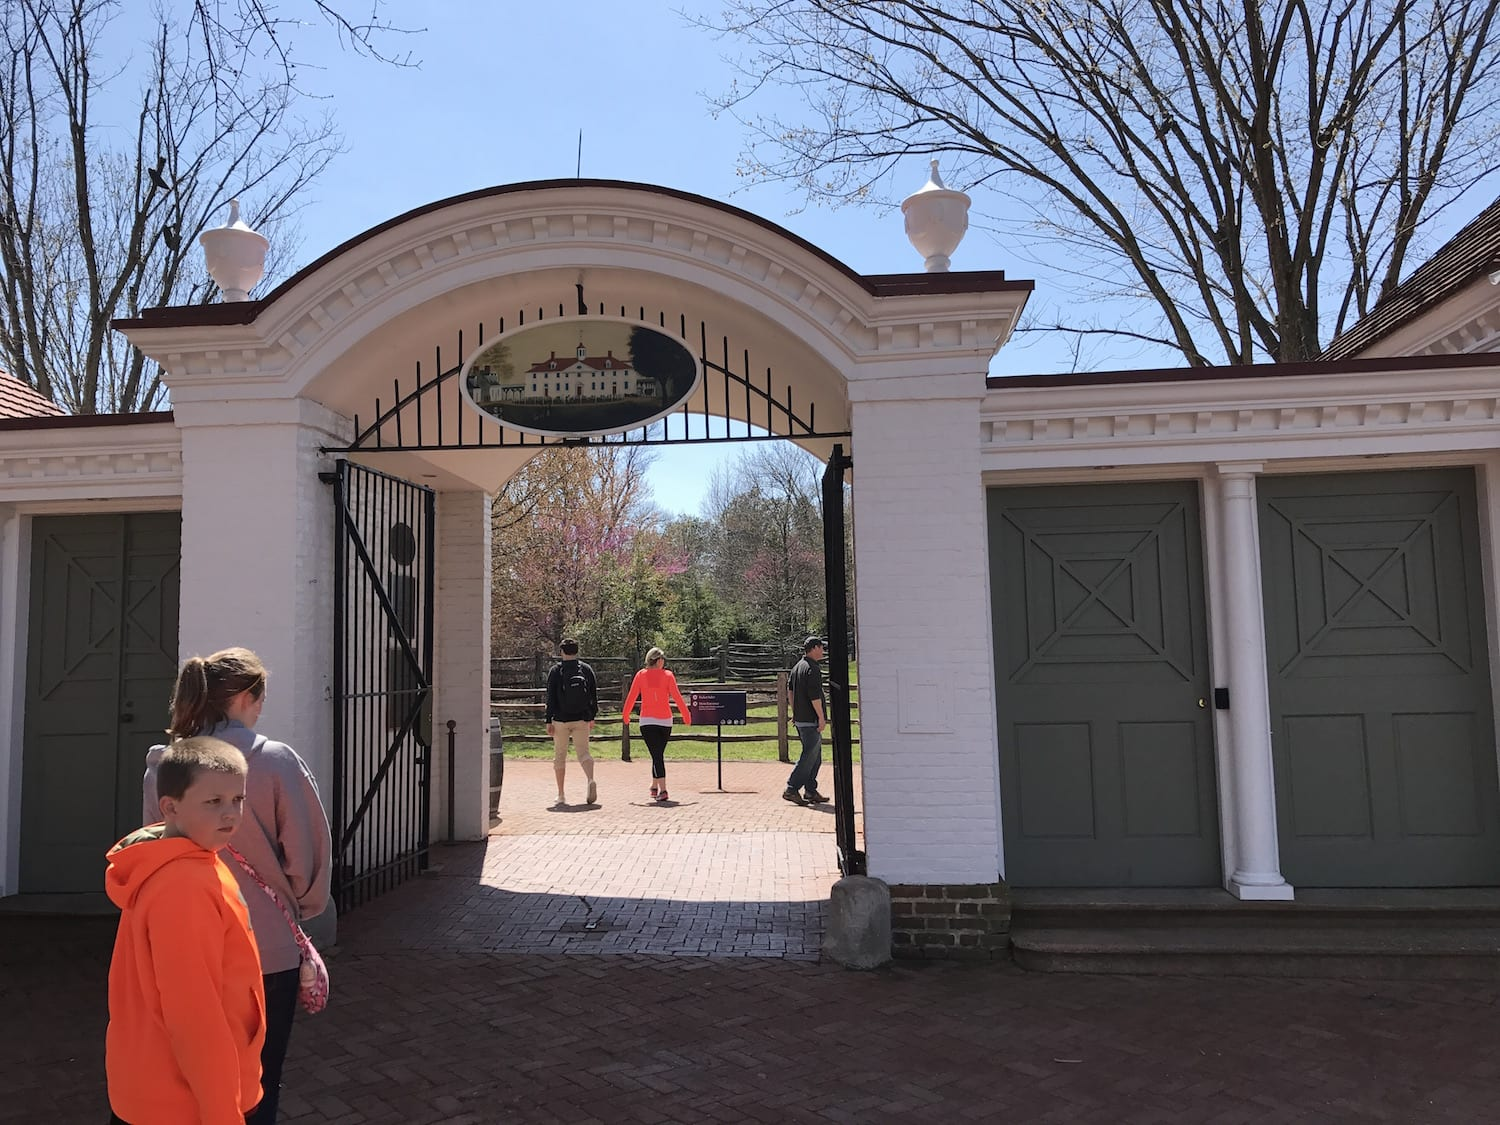 Visiting Washington's Mount Vernon